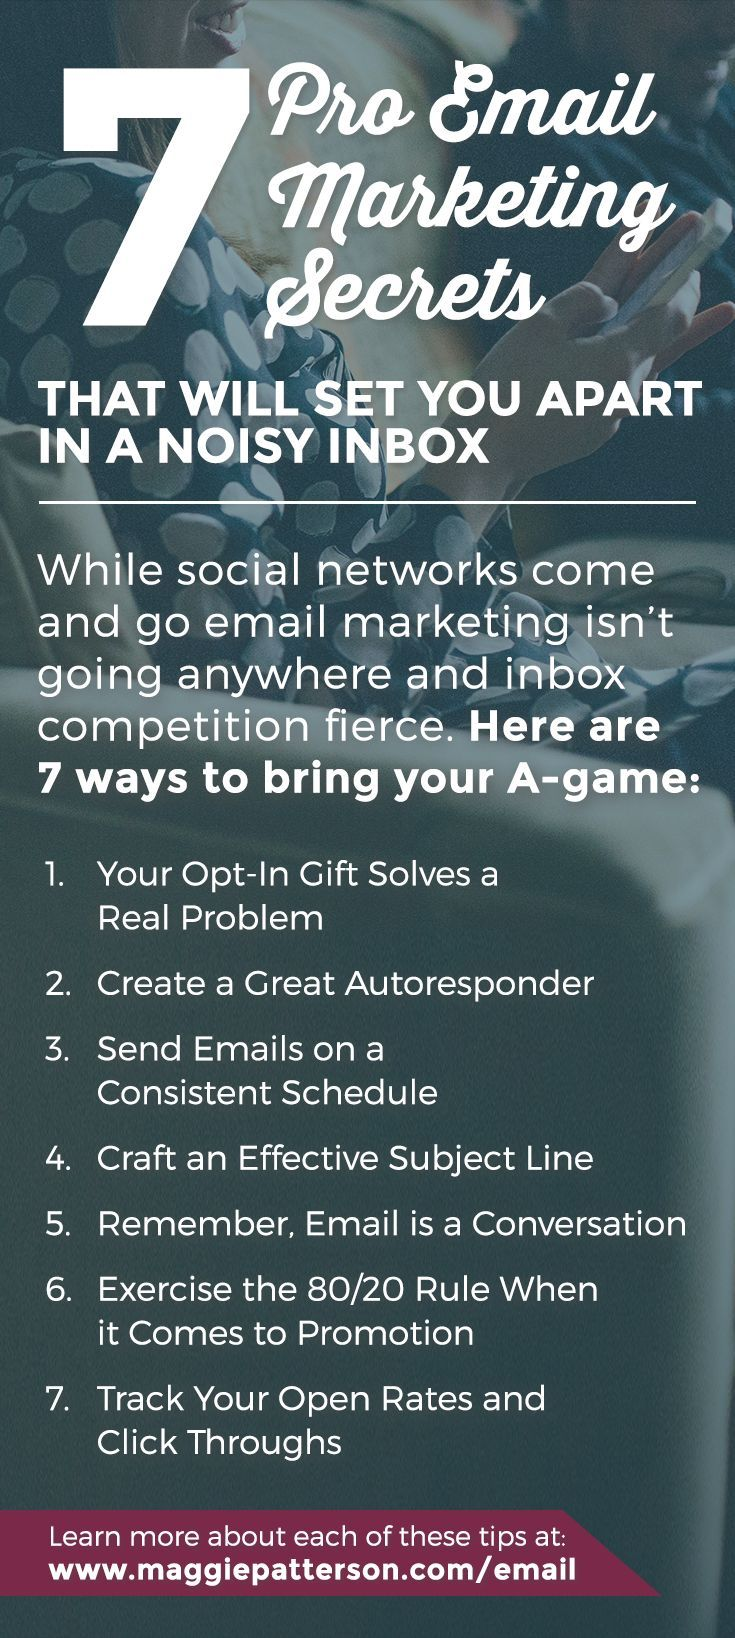 7 Email Marketing Secrets for Your Small Business // While you may personally be SO over email, not everyone else is. And if you're going to spend time marketing at all, your email marketing absolutely needs to be in the mix. Use these 7 pro email marketing secrets to stand out in a busy inbox with value-added emails that don't suck. Save this pin for later!: